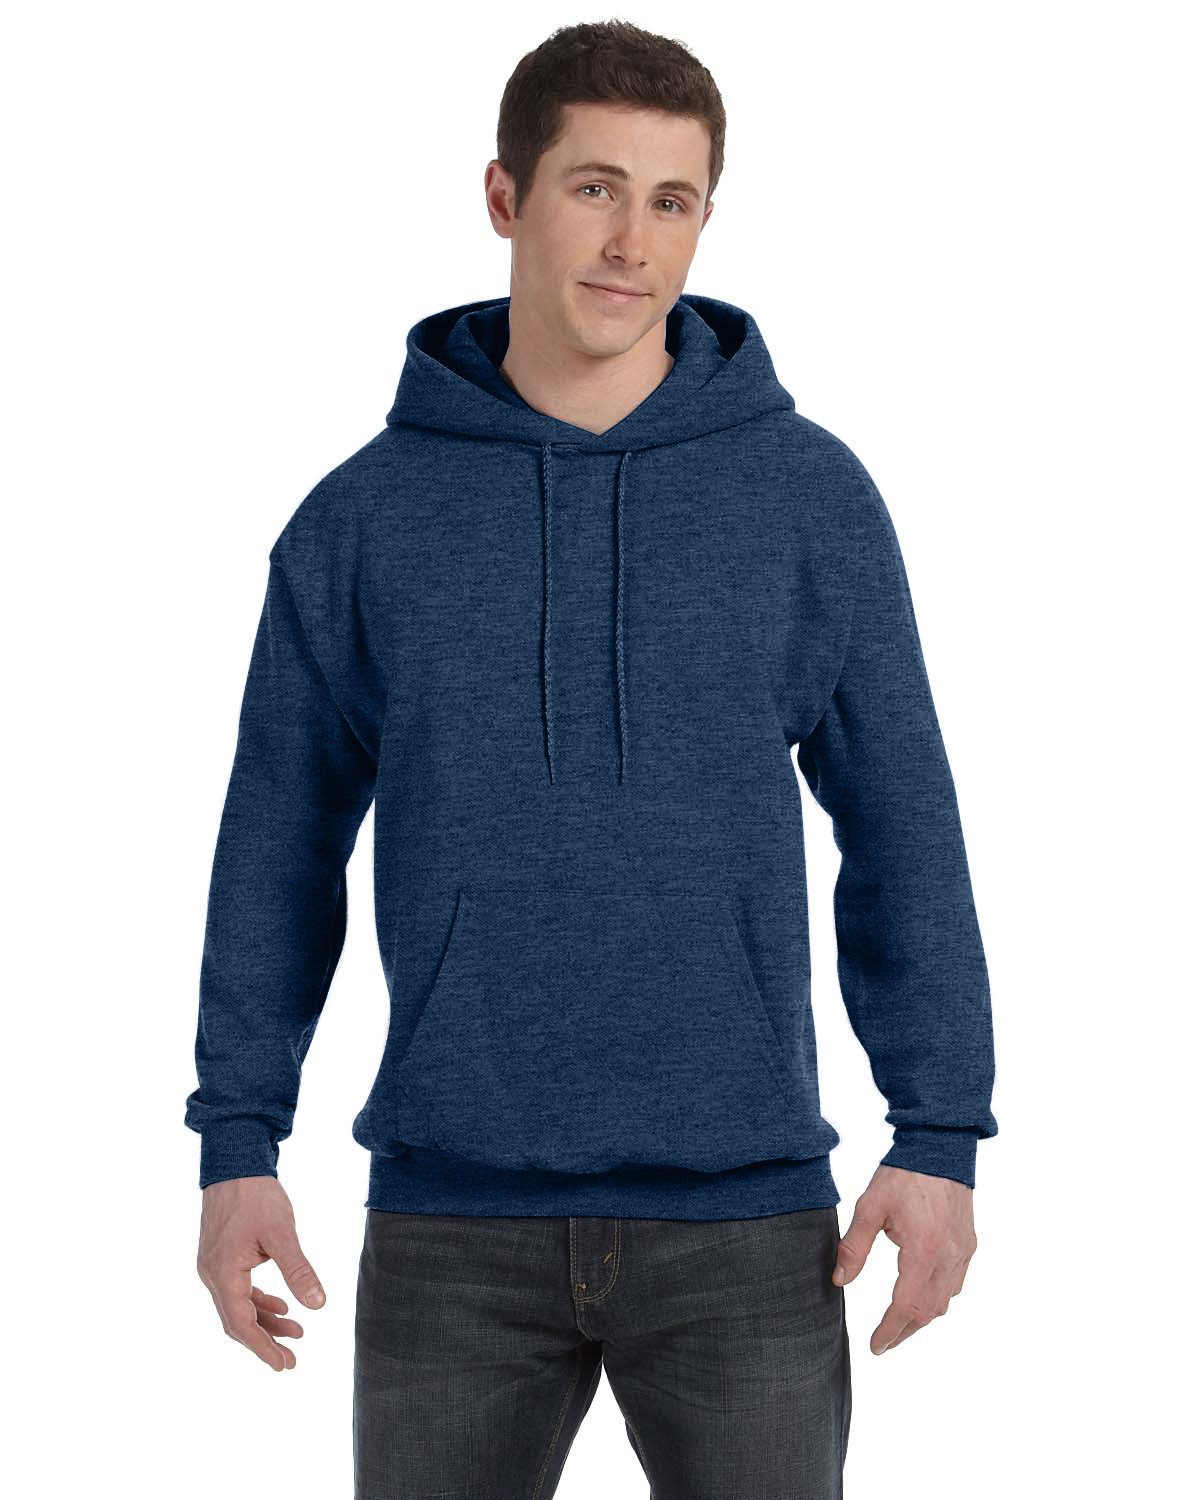 Hanes Unisex Ecosmart® 50/50 Pullover Hooded Sweatshirt HEATHER NAVY